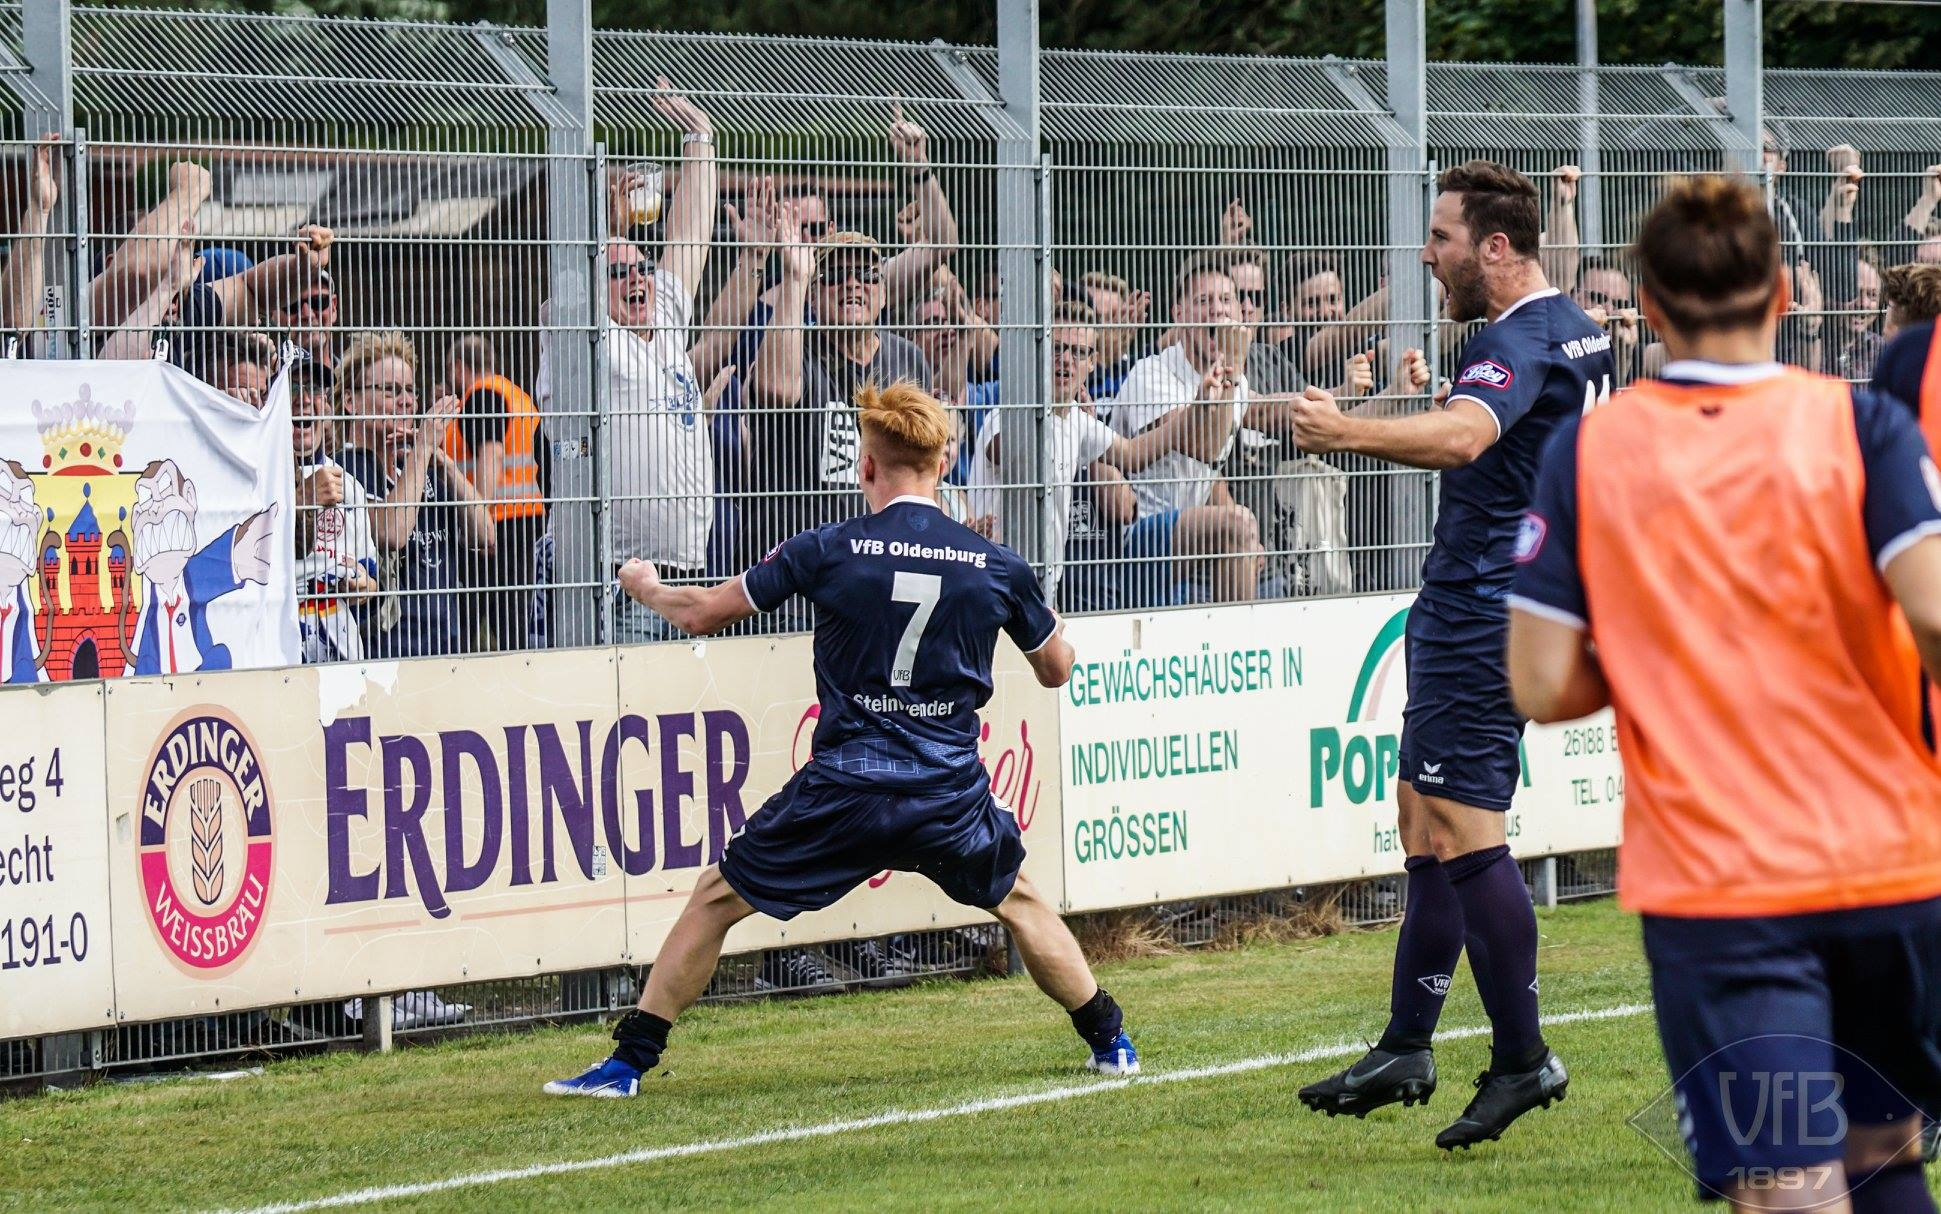 https://vfb-oldenburg.de/wp-content/uploads/20191011VfBSSV.jpg